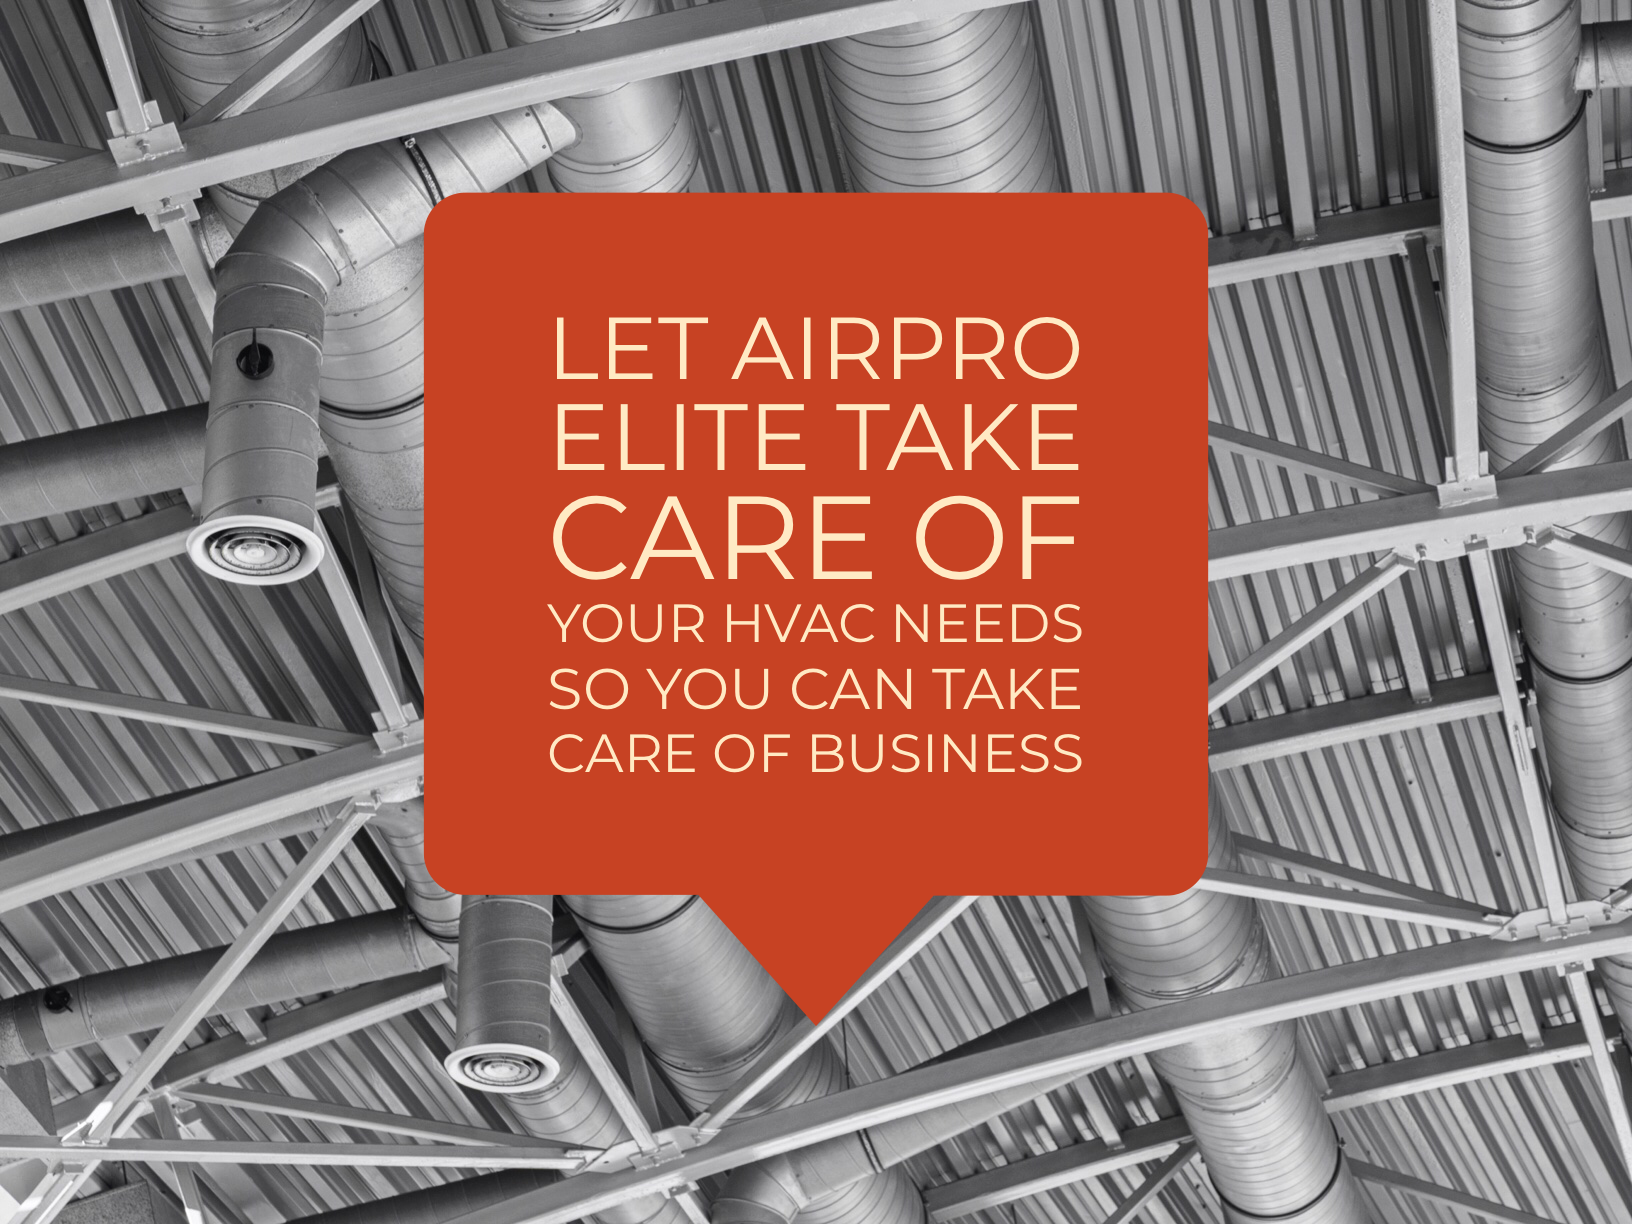 Let AIRPRO Elite Take Care Of You So You Can Take Care Of Business